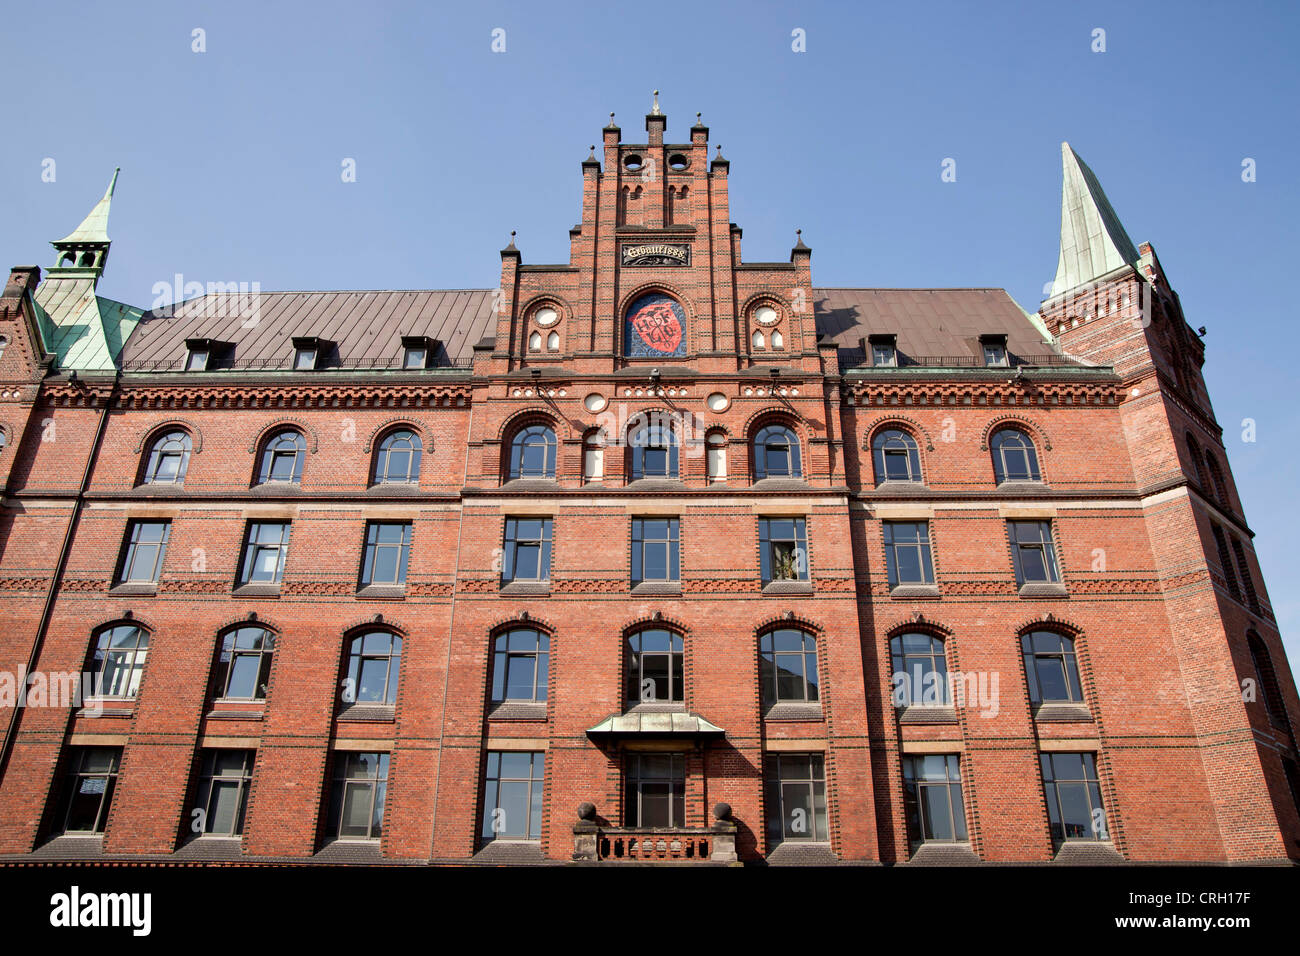 Sandthorquaihof in the Speicherstadt district, Free and Hanseatic City of Hamburg, Germany, Europe Stock Photo